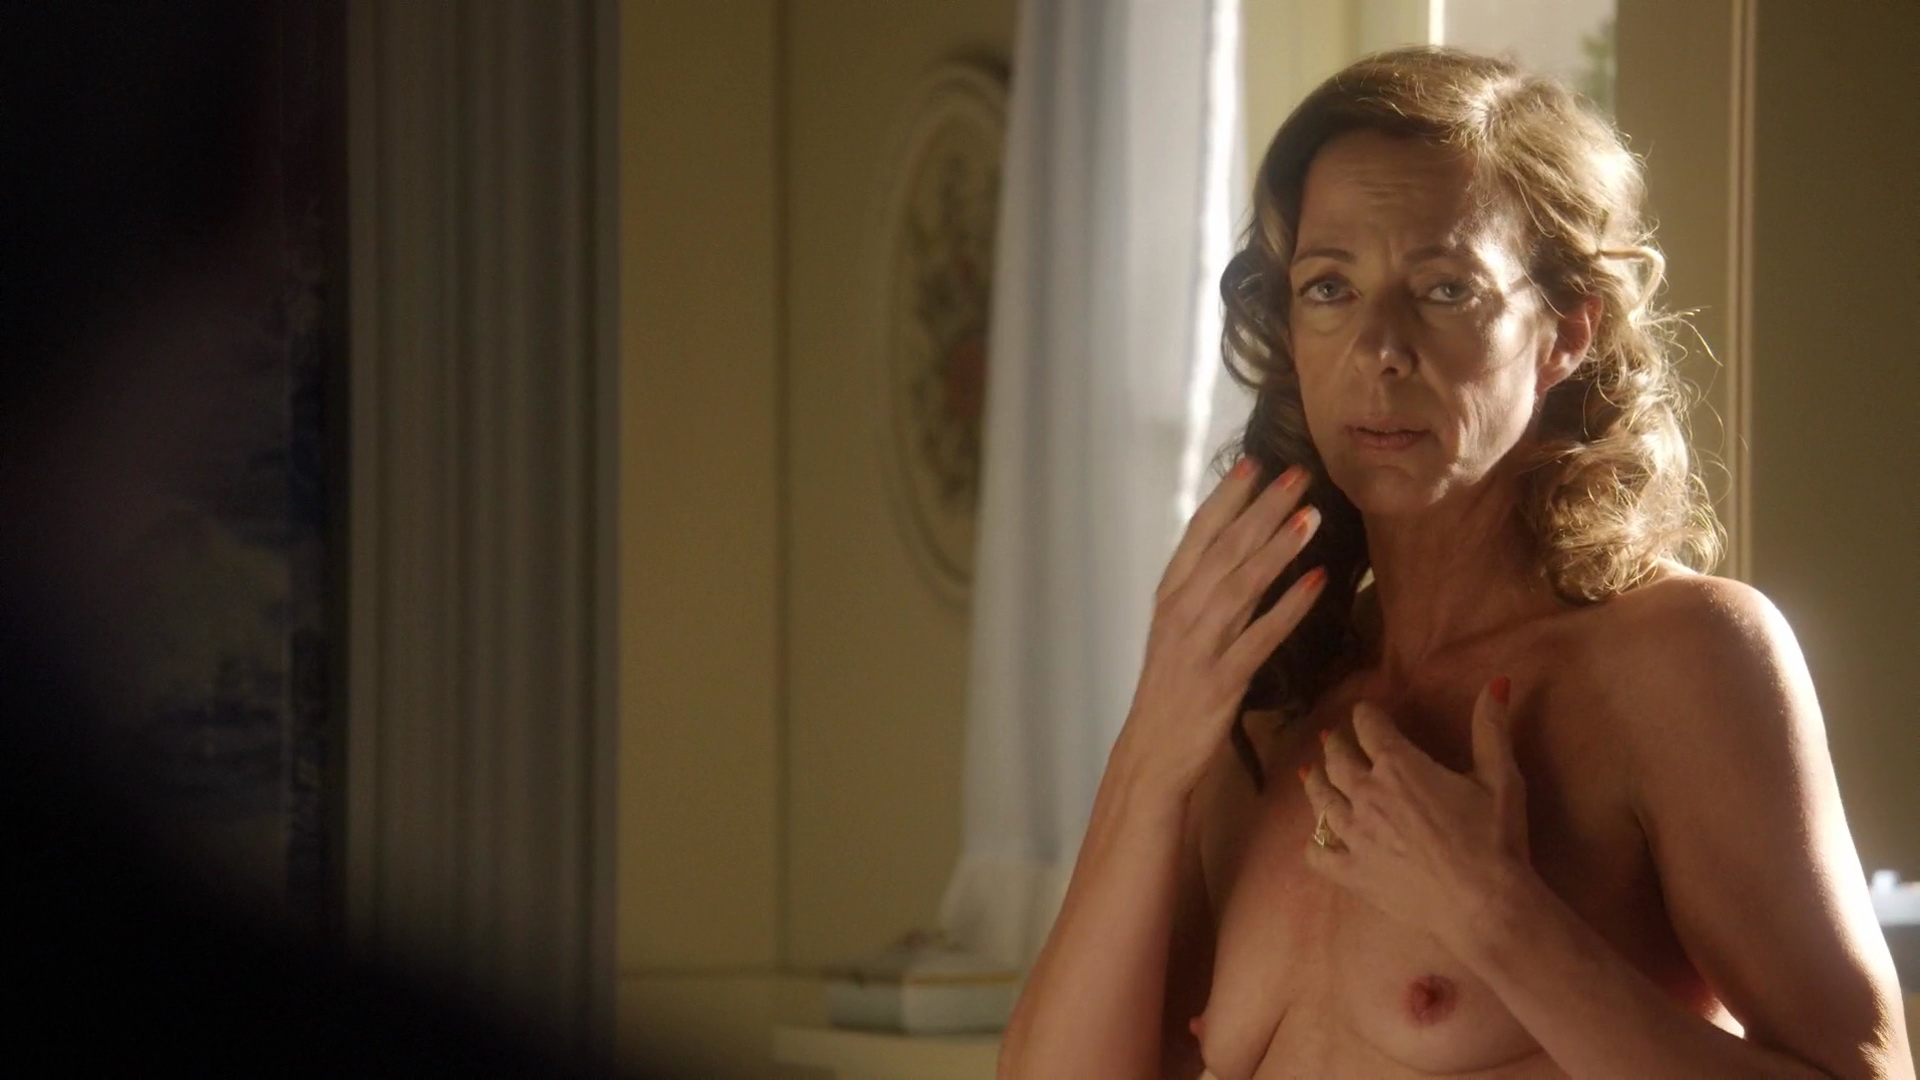 Allison Janney Nudography nudecelebvideo - your box of nude celebrities » page 654